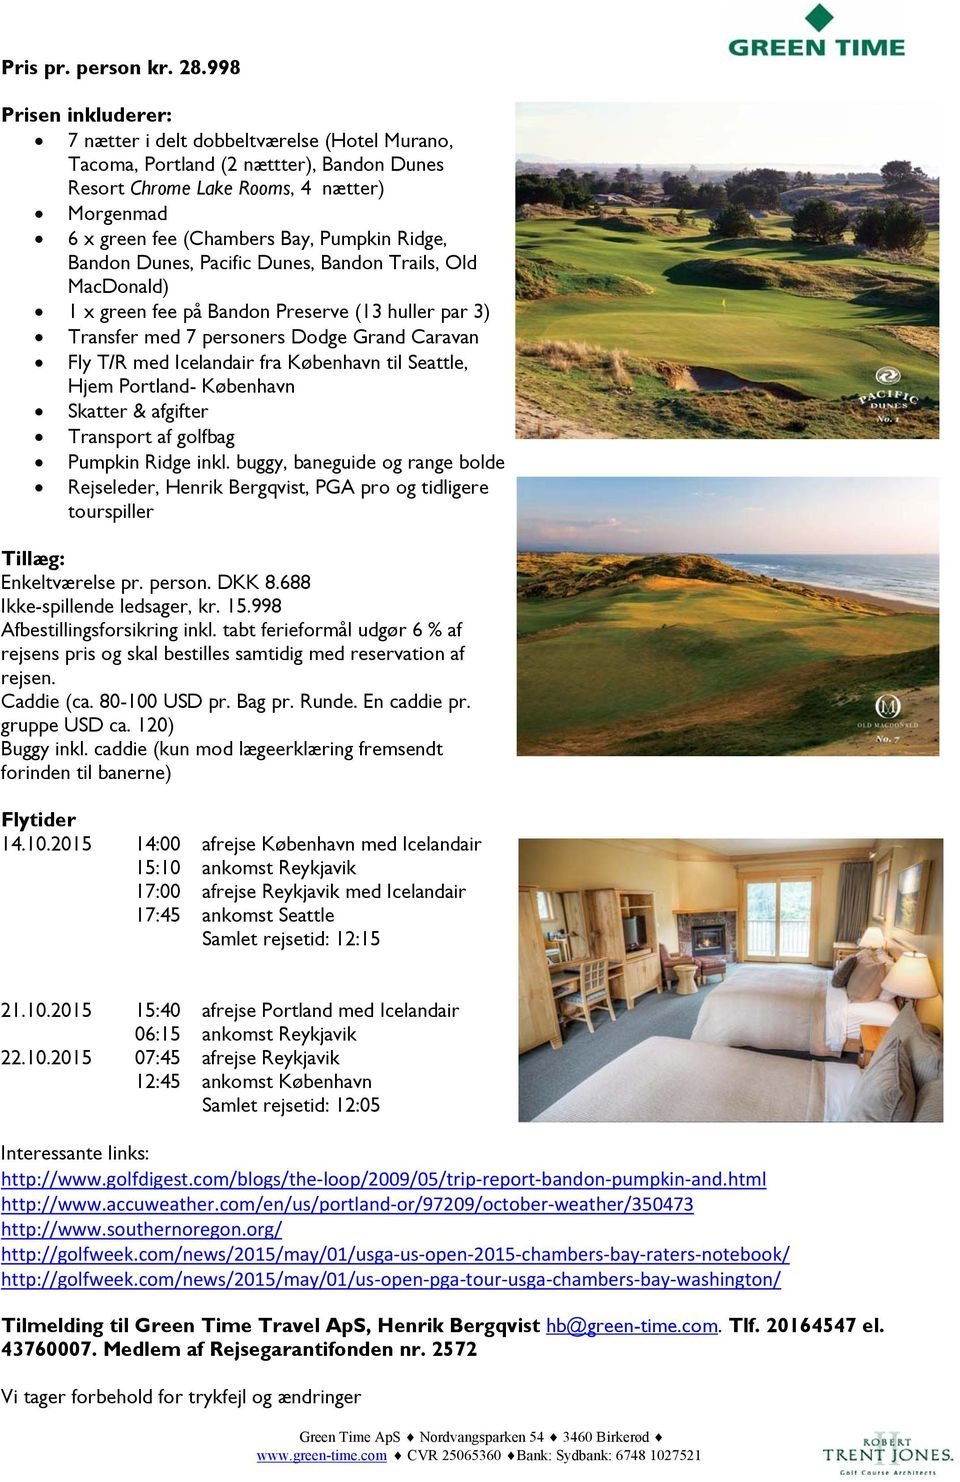 Ridge, Bandon Dunes, Pacific Dunes, Bandon Trails, Old MacDonald) 1 x green fee på Bandon Preserve (13 huller par 3) Transfer med 7 personers Dodge Grand Caravan Fly T/R med Icelandair fra København